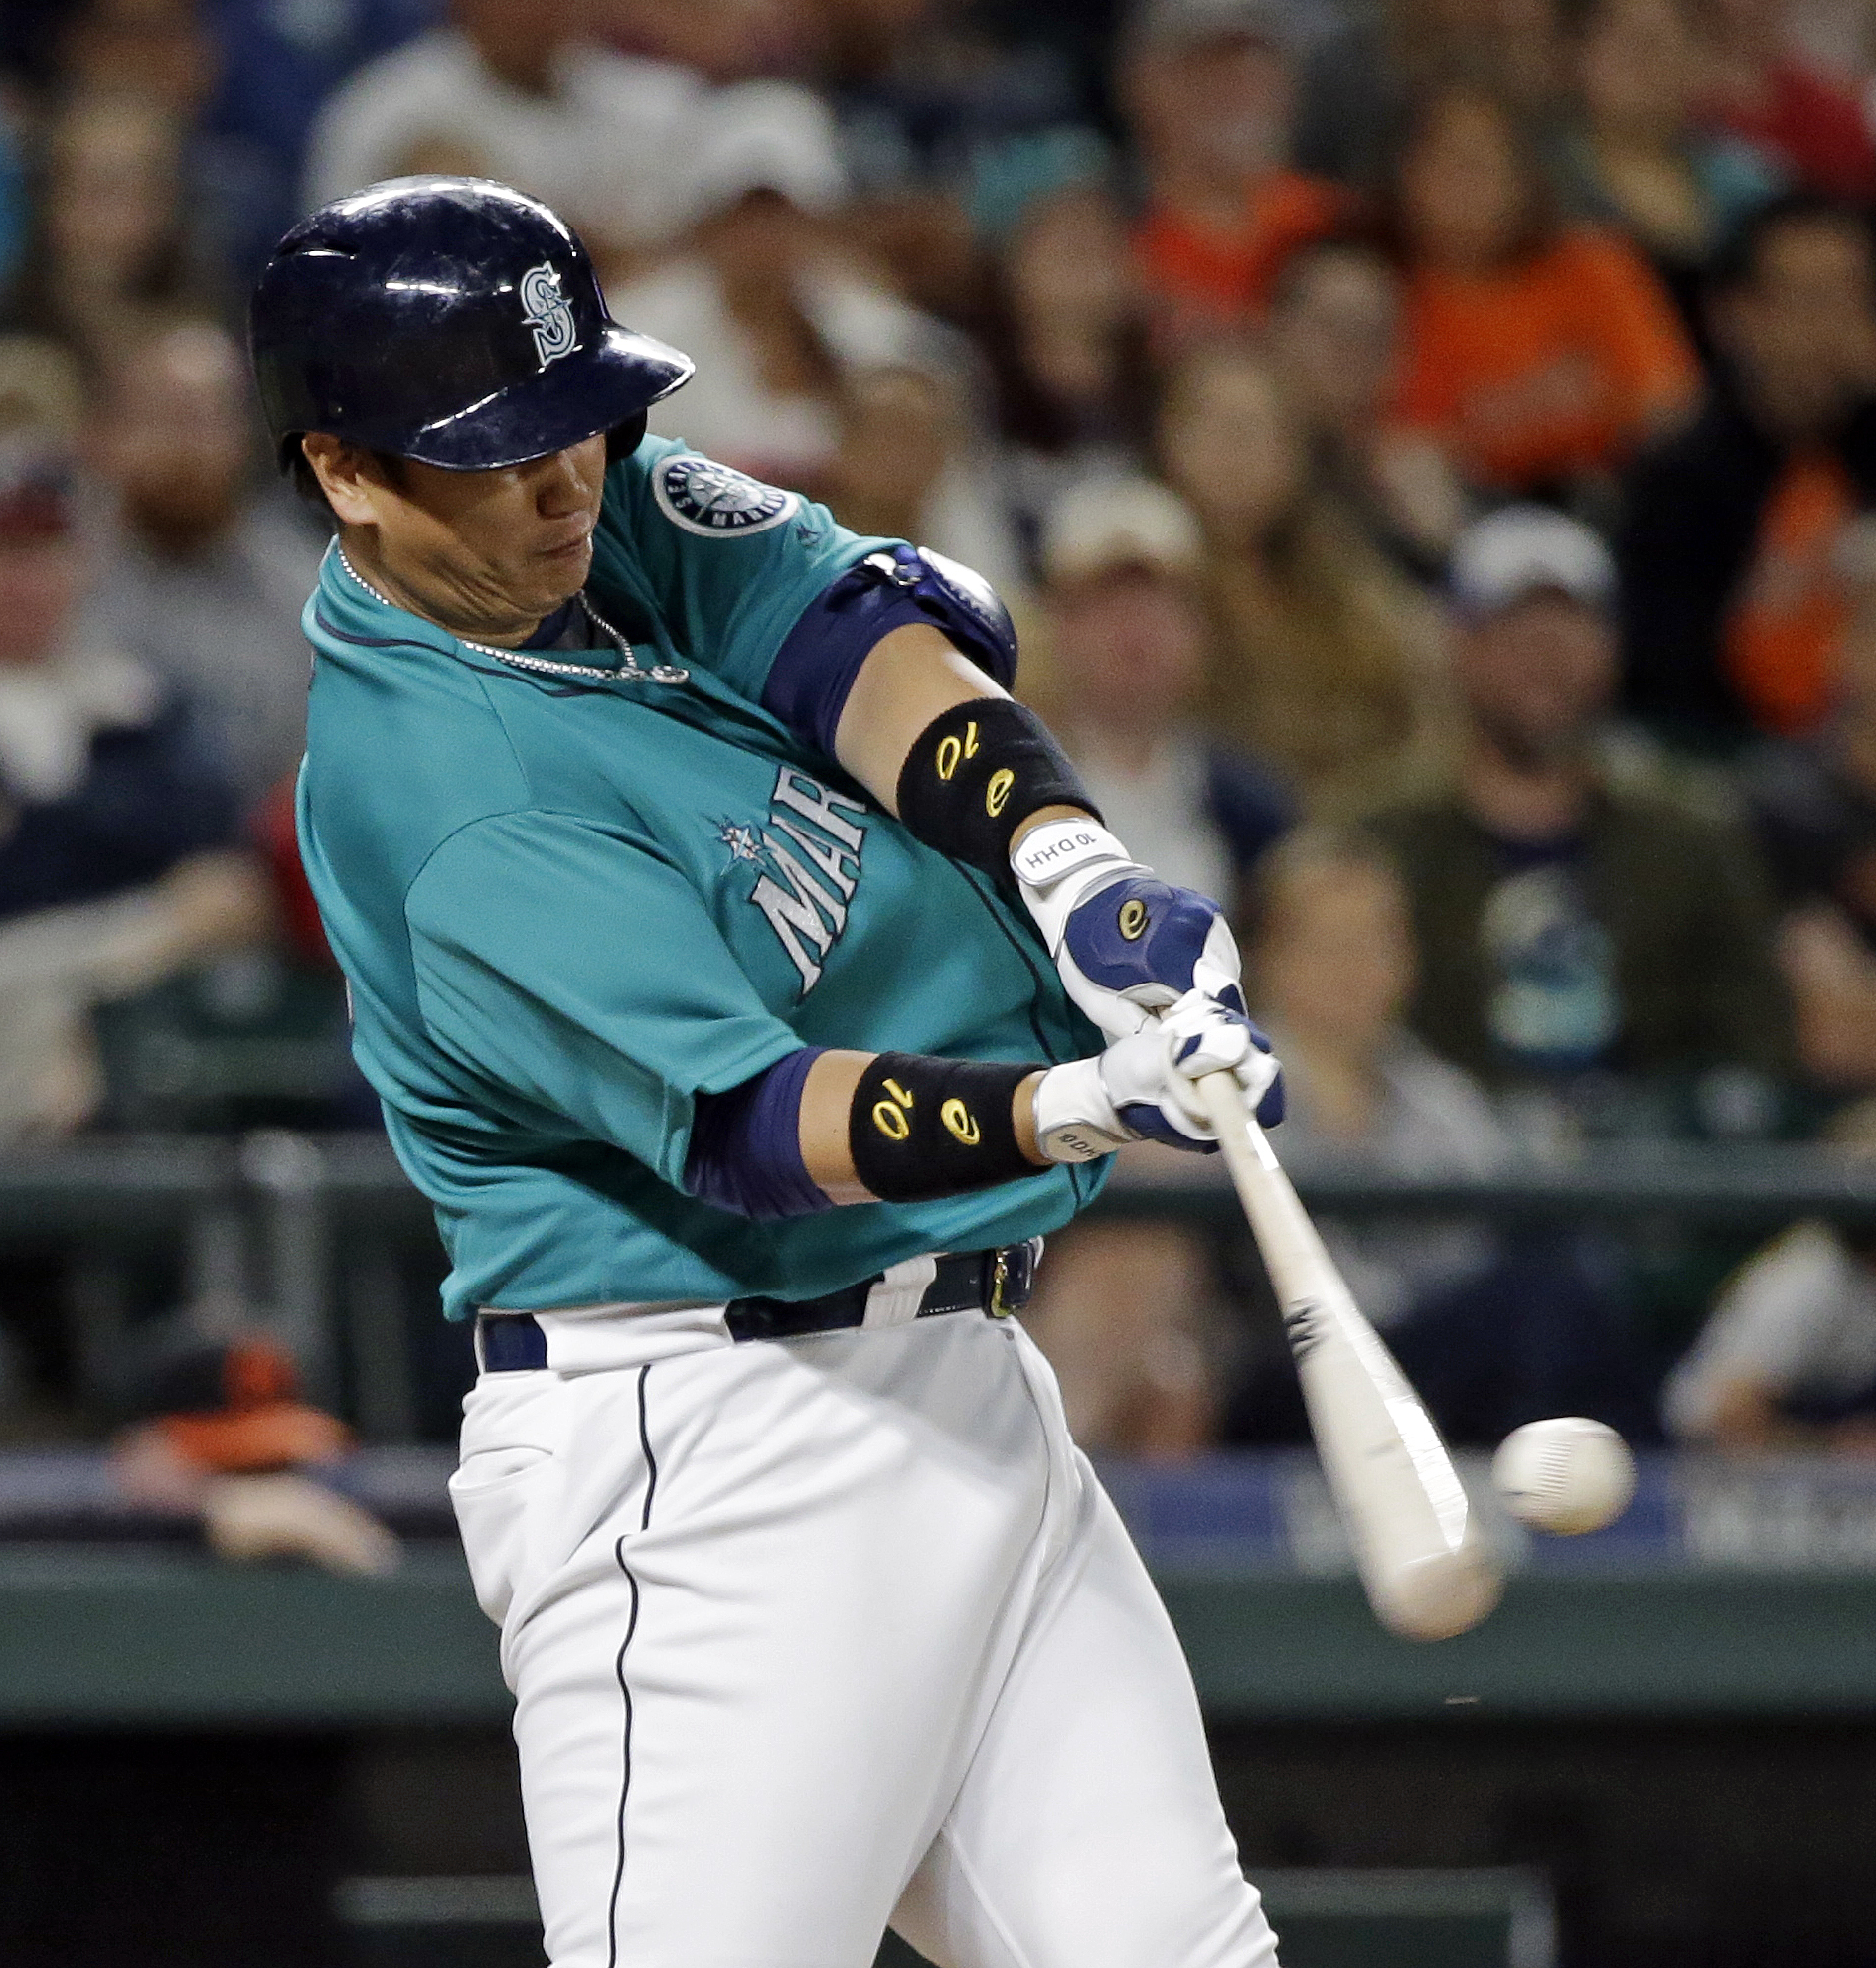 Seattle Mariners' Dae-Ho Lee hits a two-run home run against the Baltimore Orioles during the eighth inning of a baseball game Friday, July 1, 2016, in Seattle. (AP Photo/Elaine Thompson)